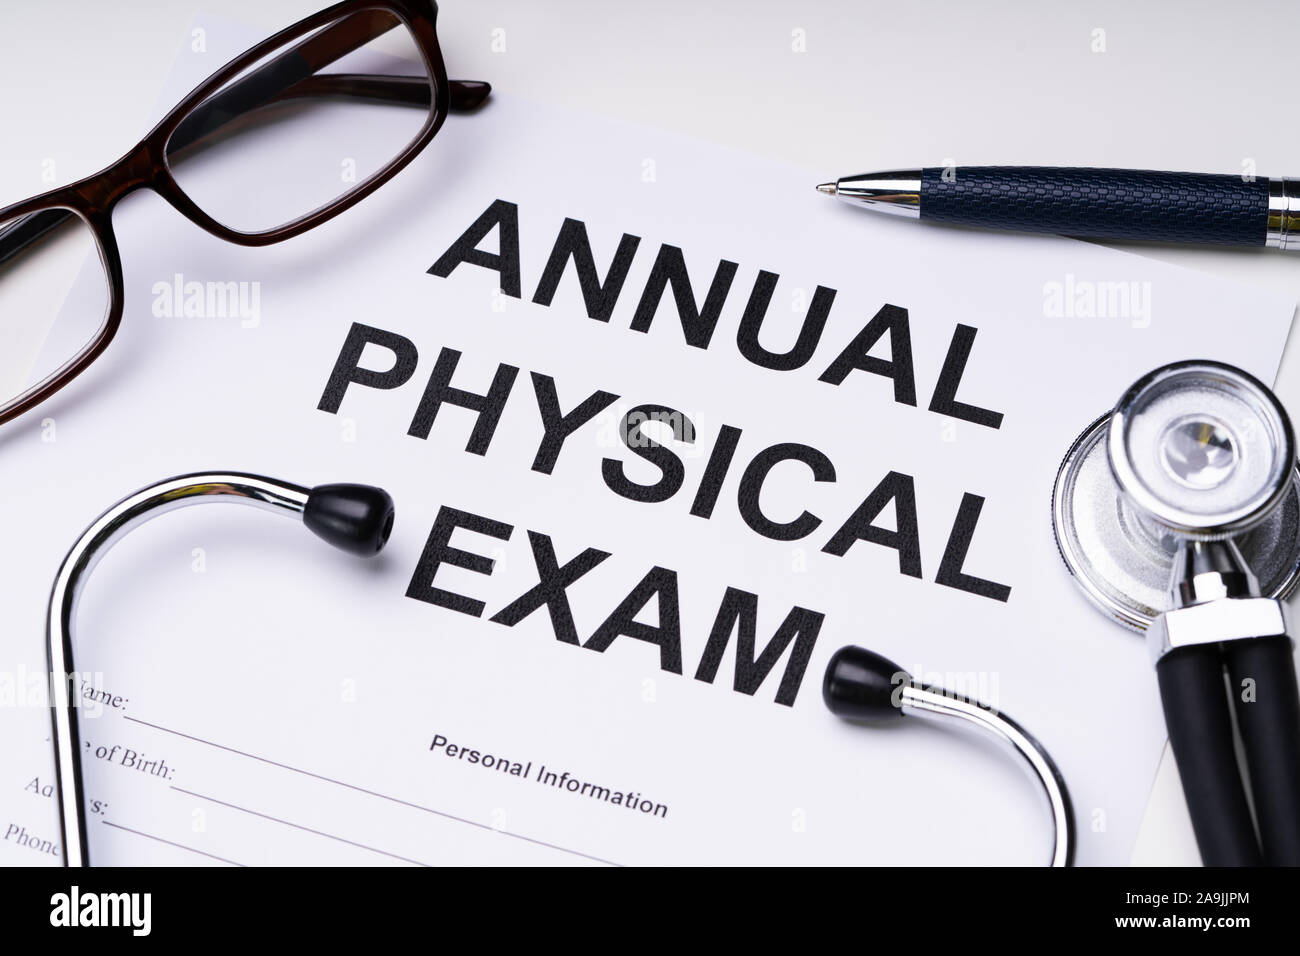 High Angle View Of Annual Physical Exam Form With Stethoscope And Spectacles Over White Desk Stock Photo